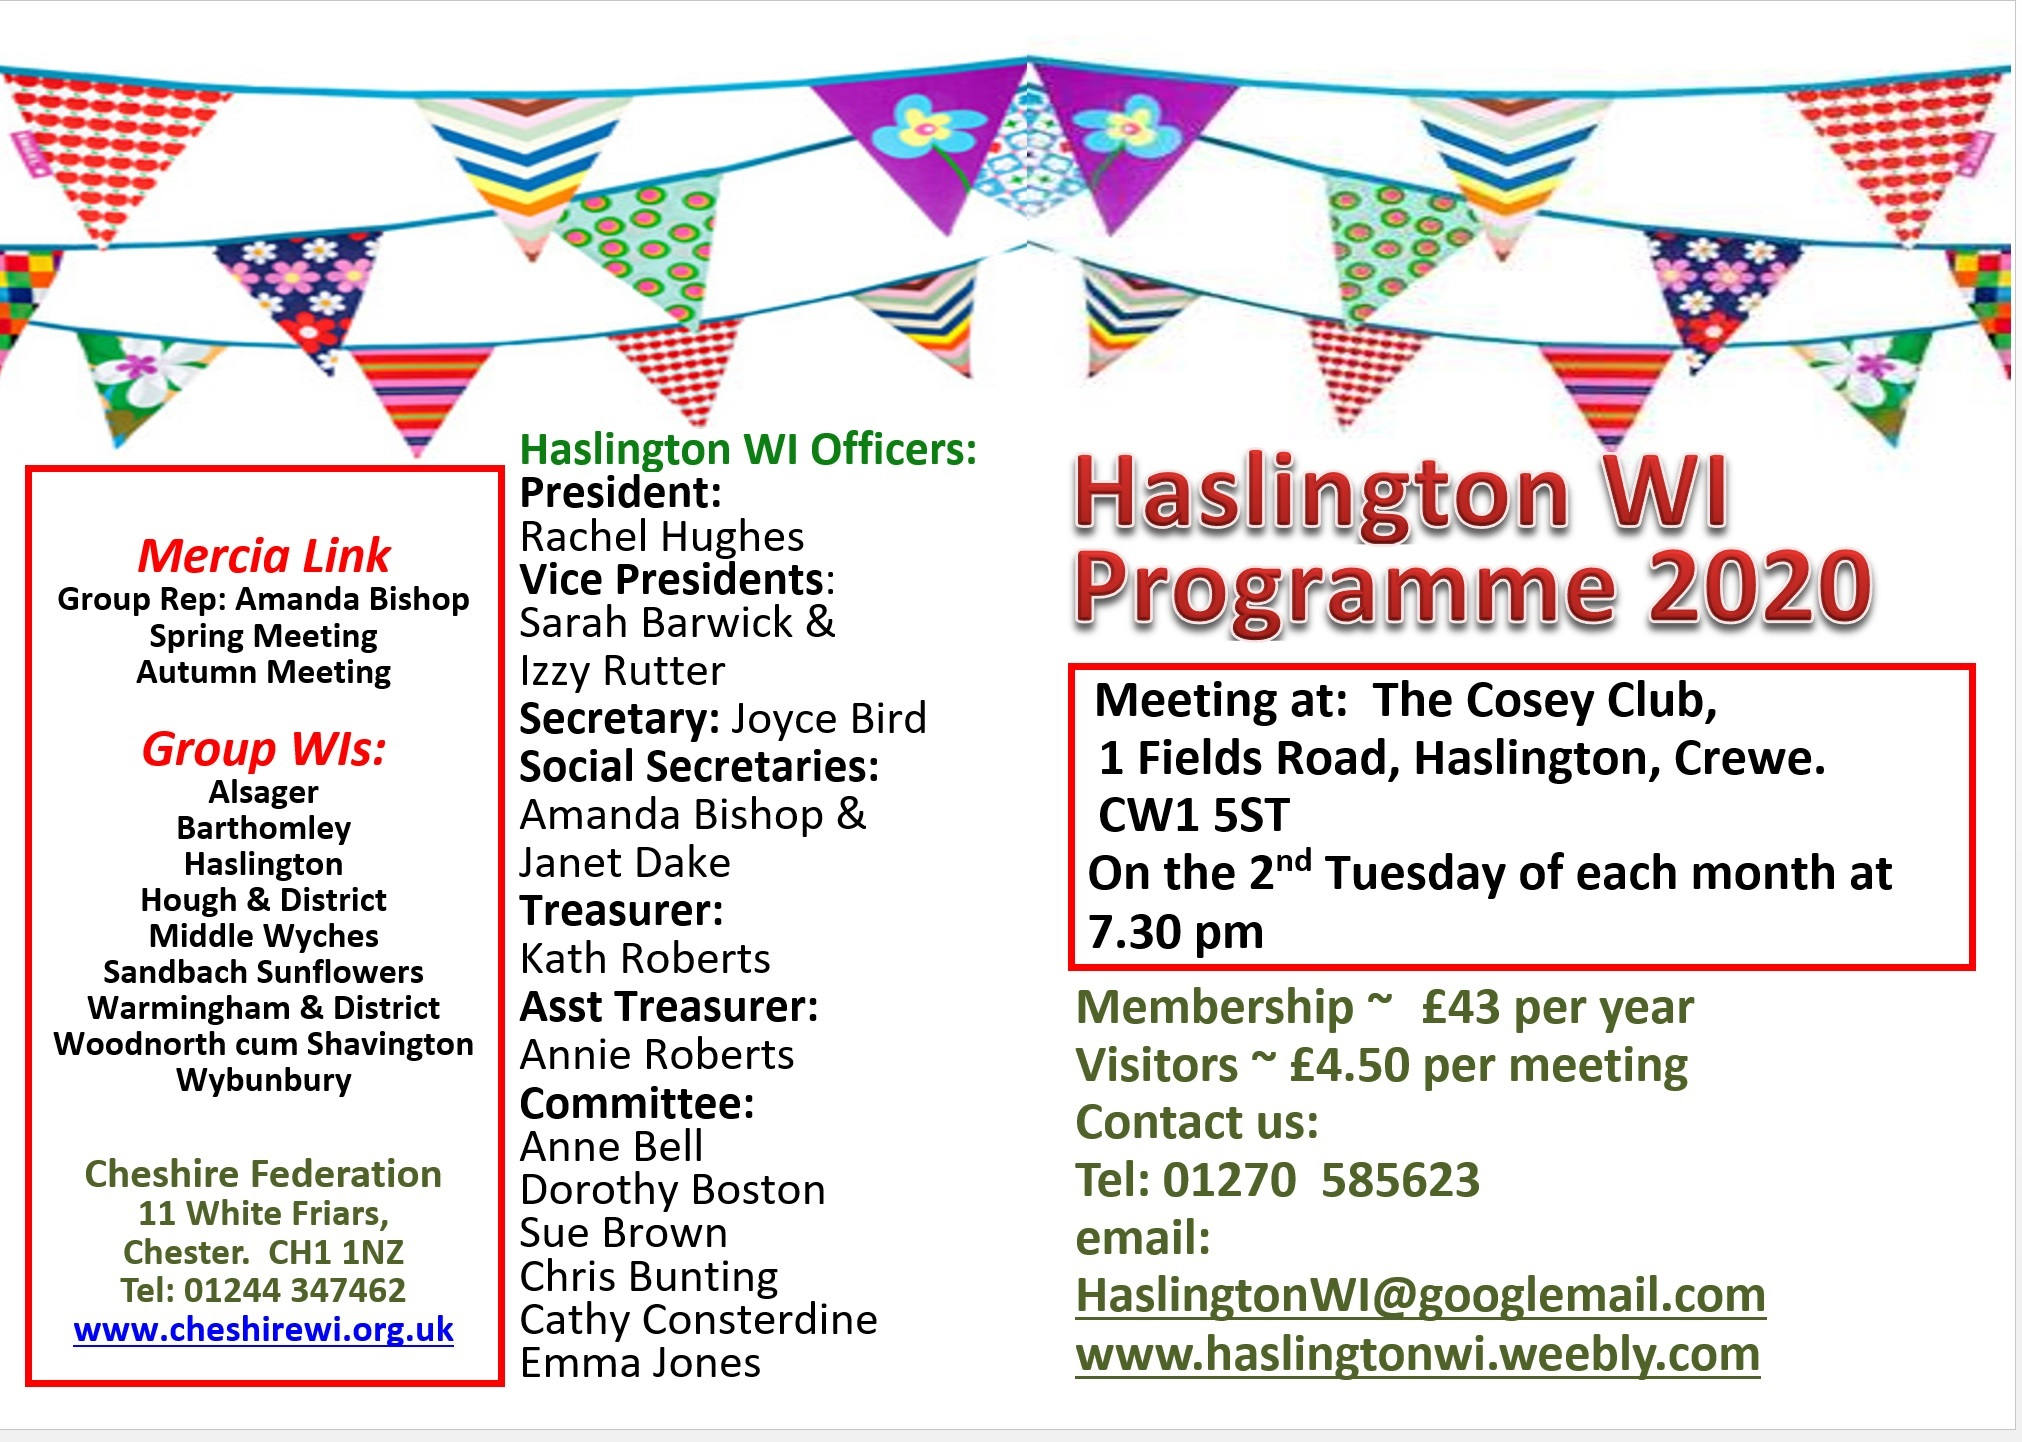 A poster providing details of Haslington WI officers, membership and meetings. Contact number: 01270 585623 or email HaslingtonWI@googlemail.com.